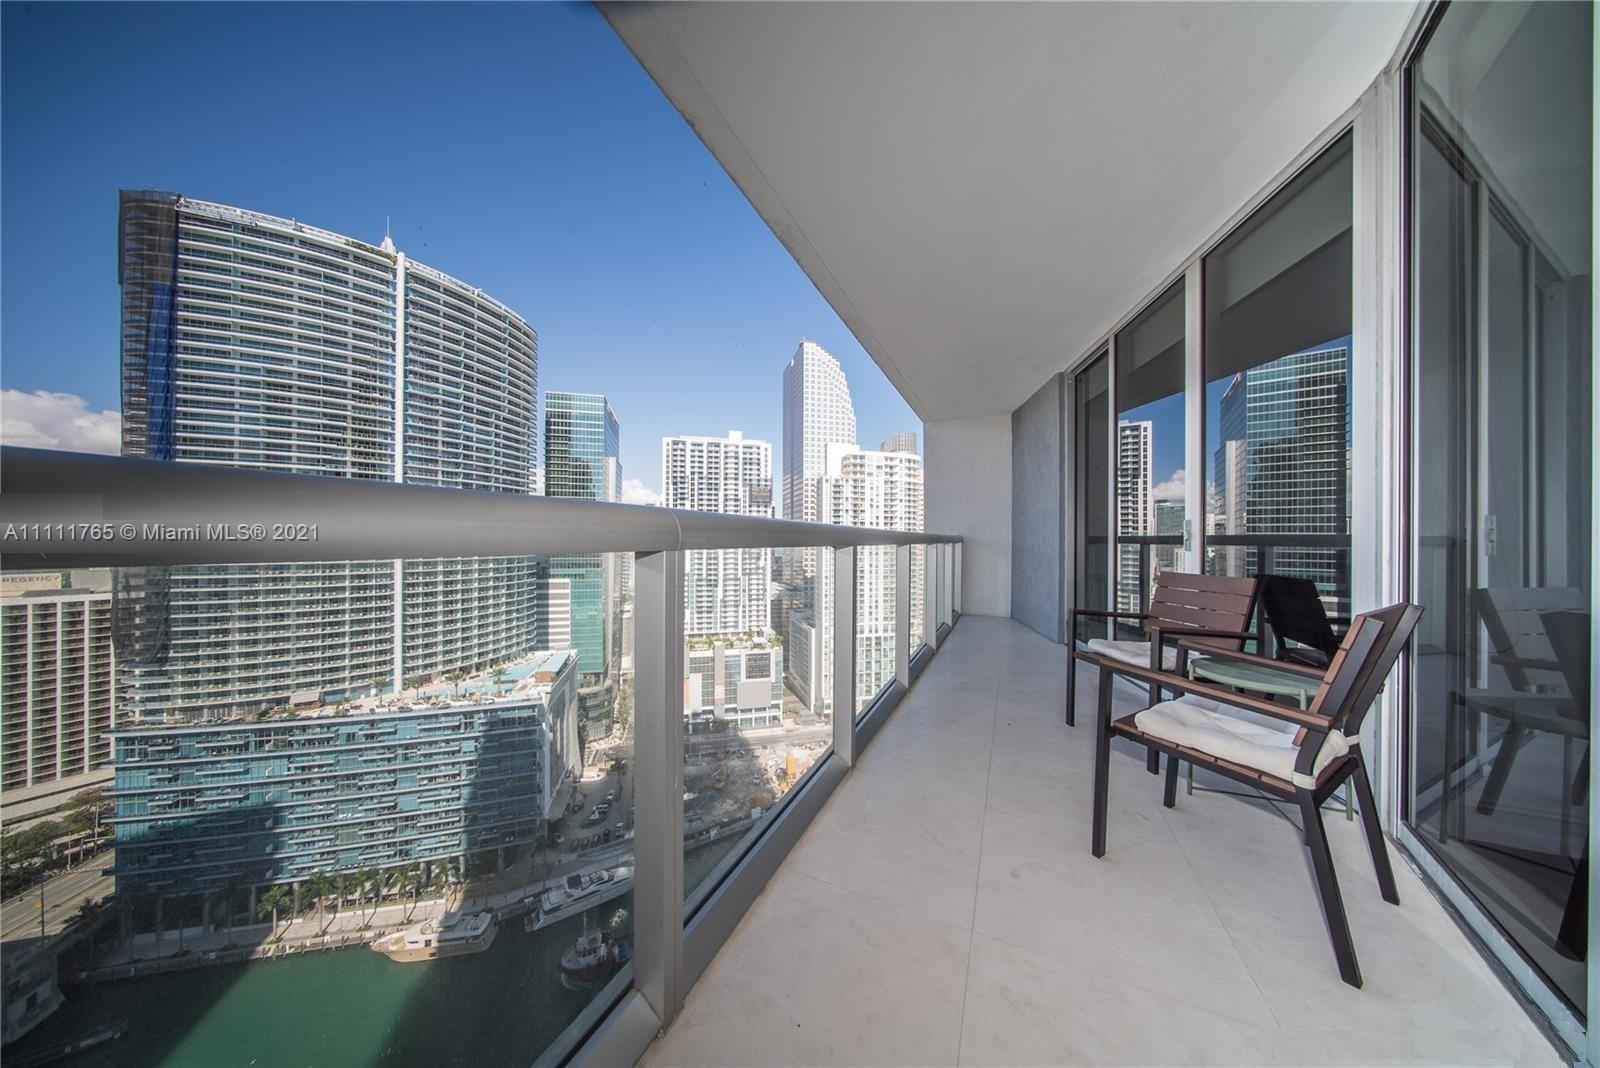 One-of-a-kind, largest 1 Bed/1 Bath Condo available For Sale  @ ICON BRICKELL, Tower I. Miami River